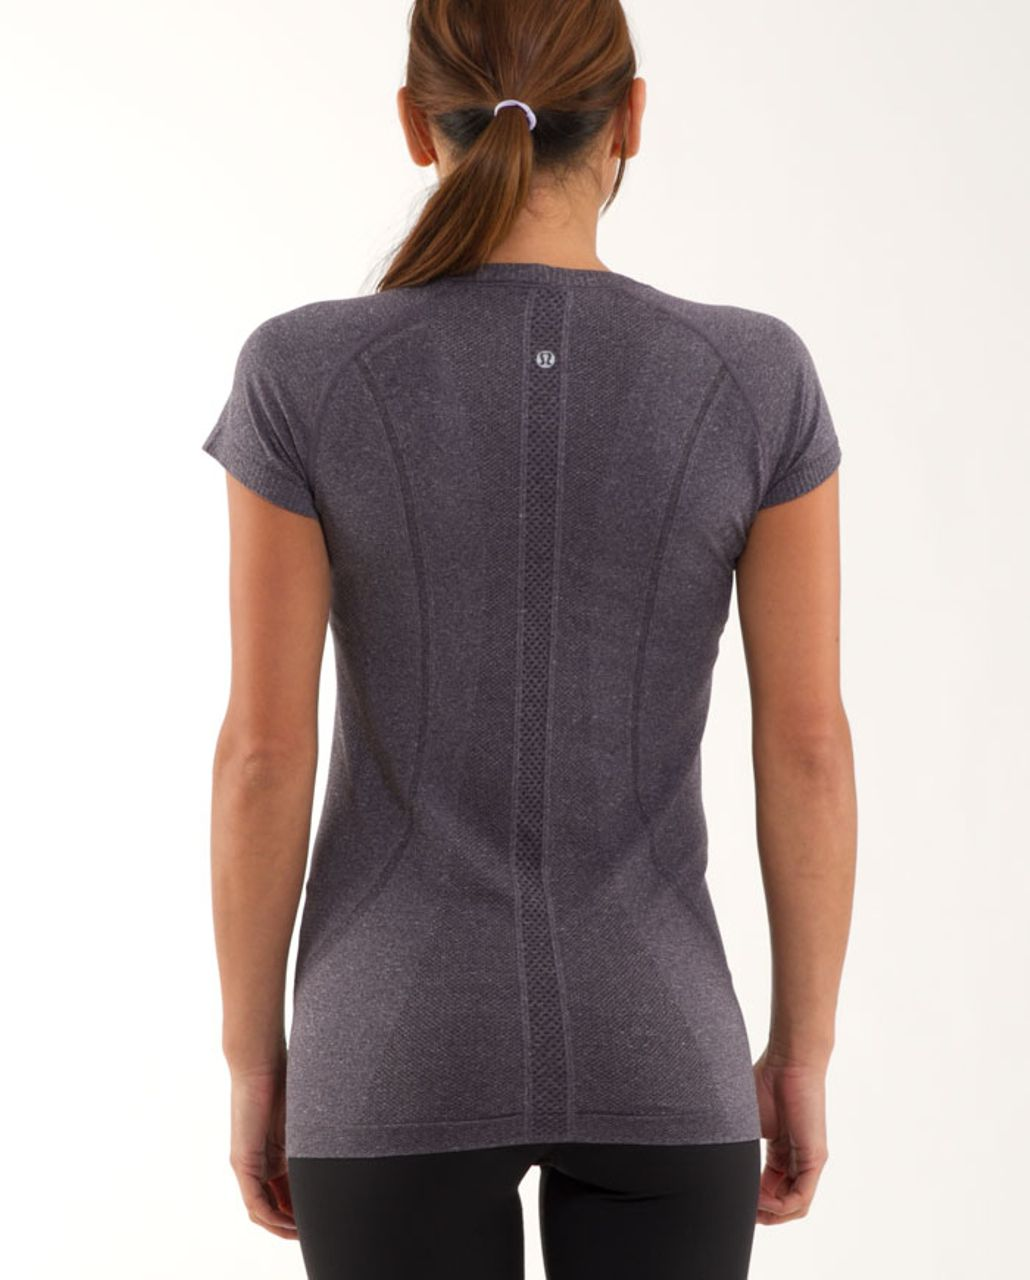 Lululemon Run:  Swiftly Tech Short Sleeve - Black Swan